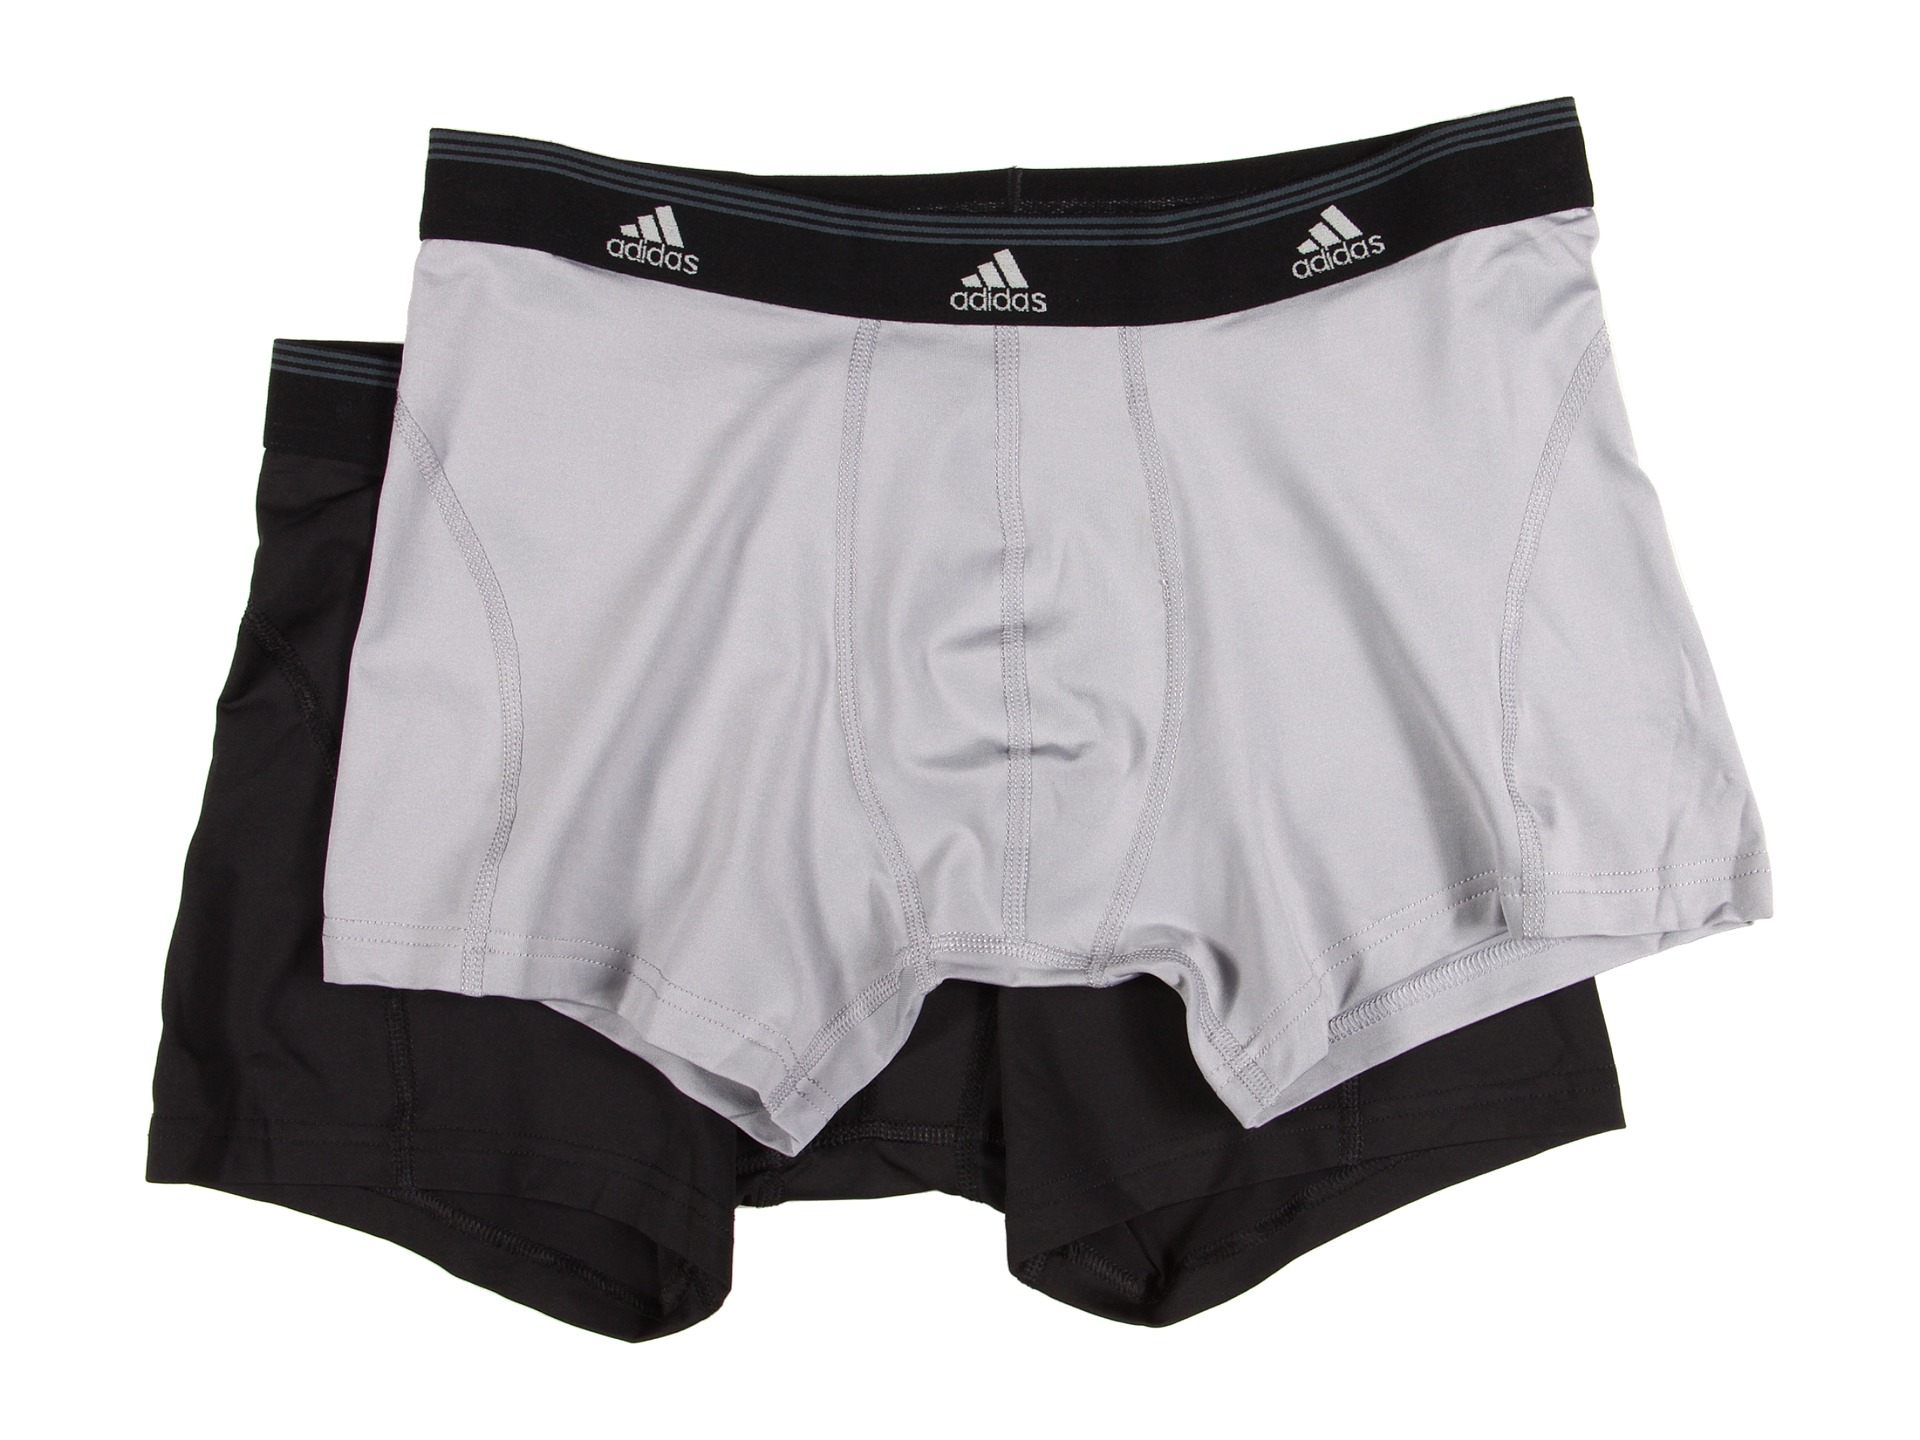 5f2a58965b3d Lyst - adidas Sport Performance Climalite® 2-Pack Trunk in Black for Men